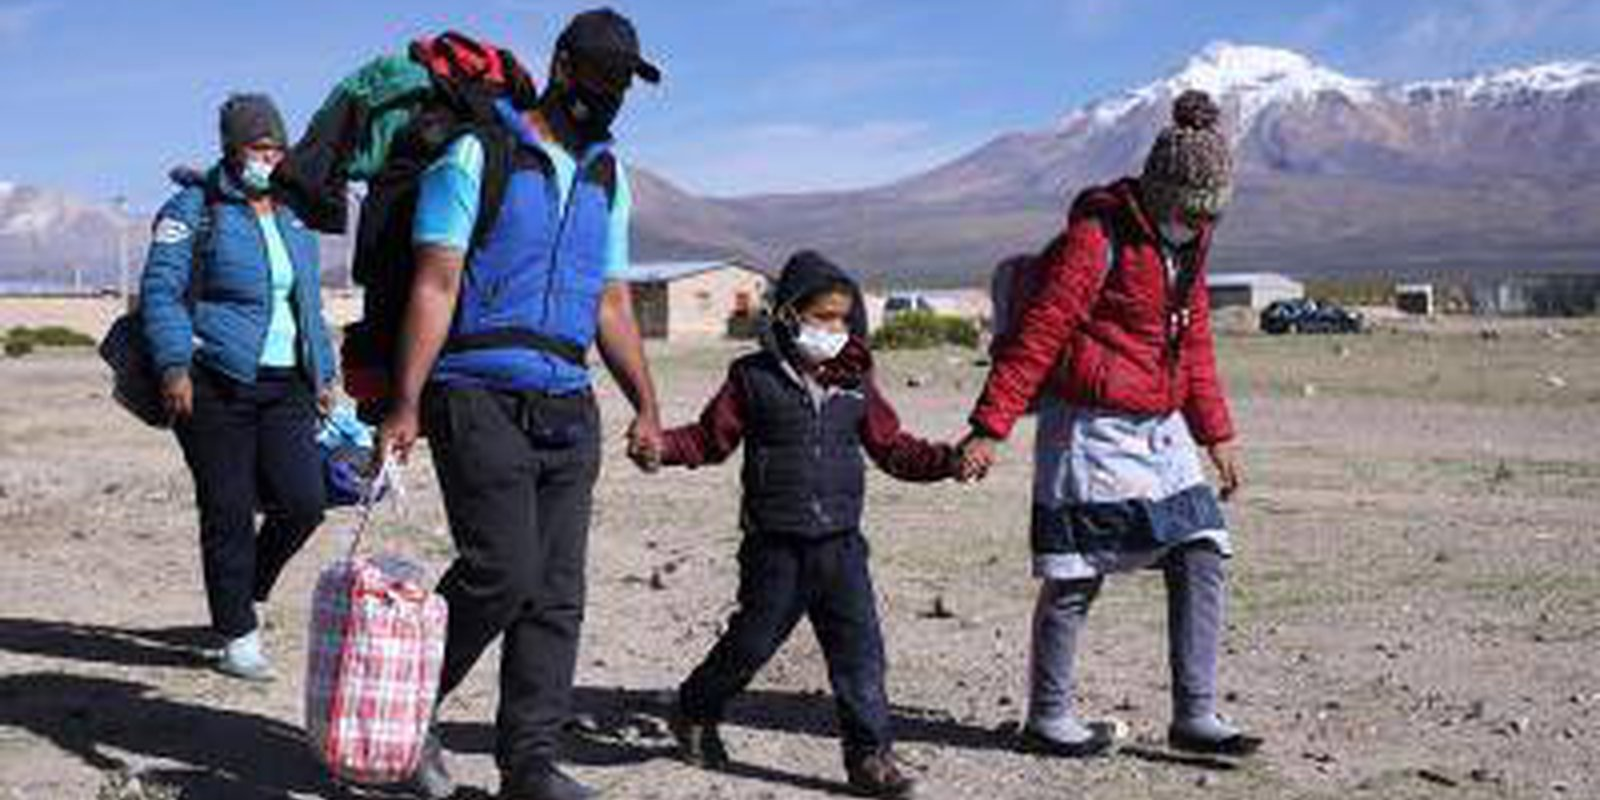 A Venezuelan migrant family is seen after crossing the border between Bolivia and Chile. Photo by Ignacio Munoz/ AFP via Getty Images.